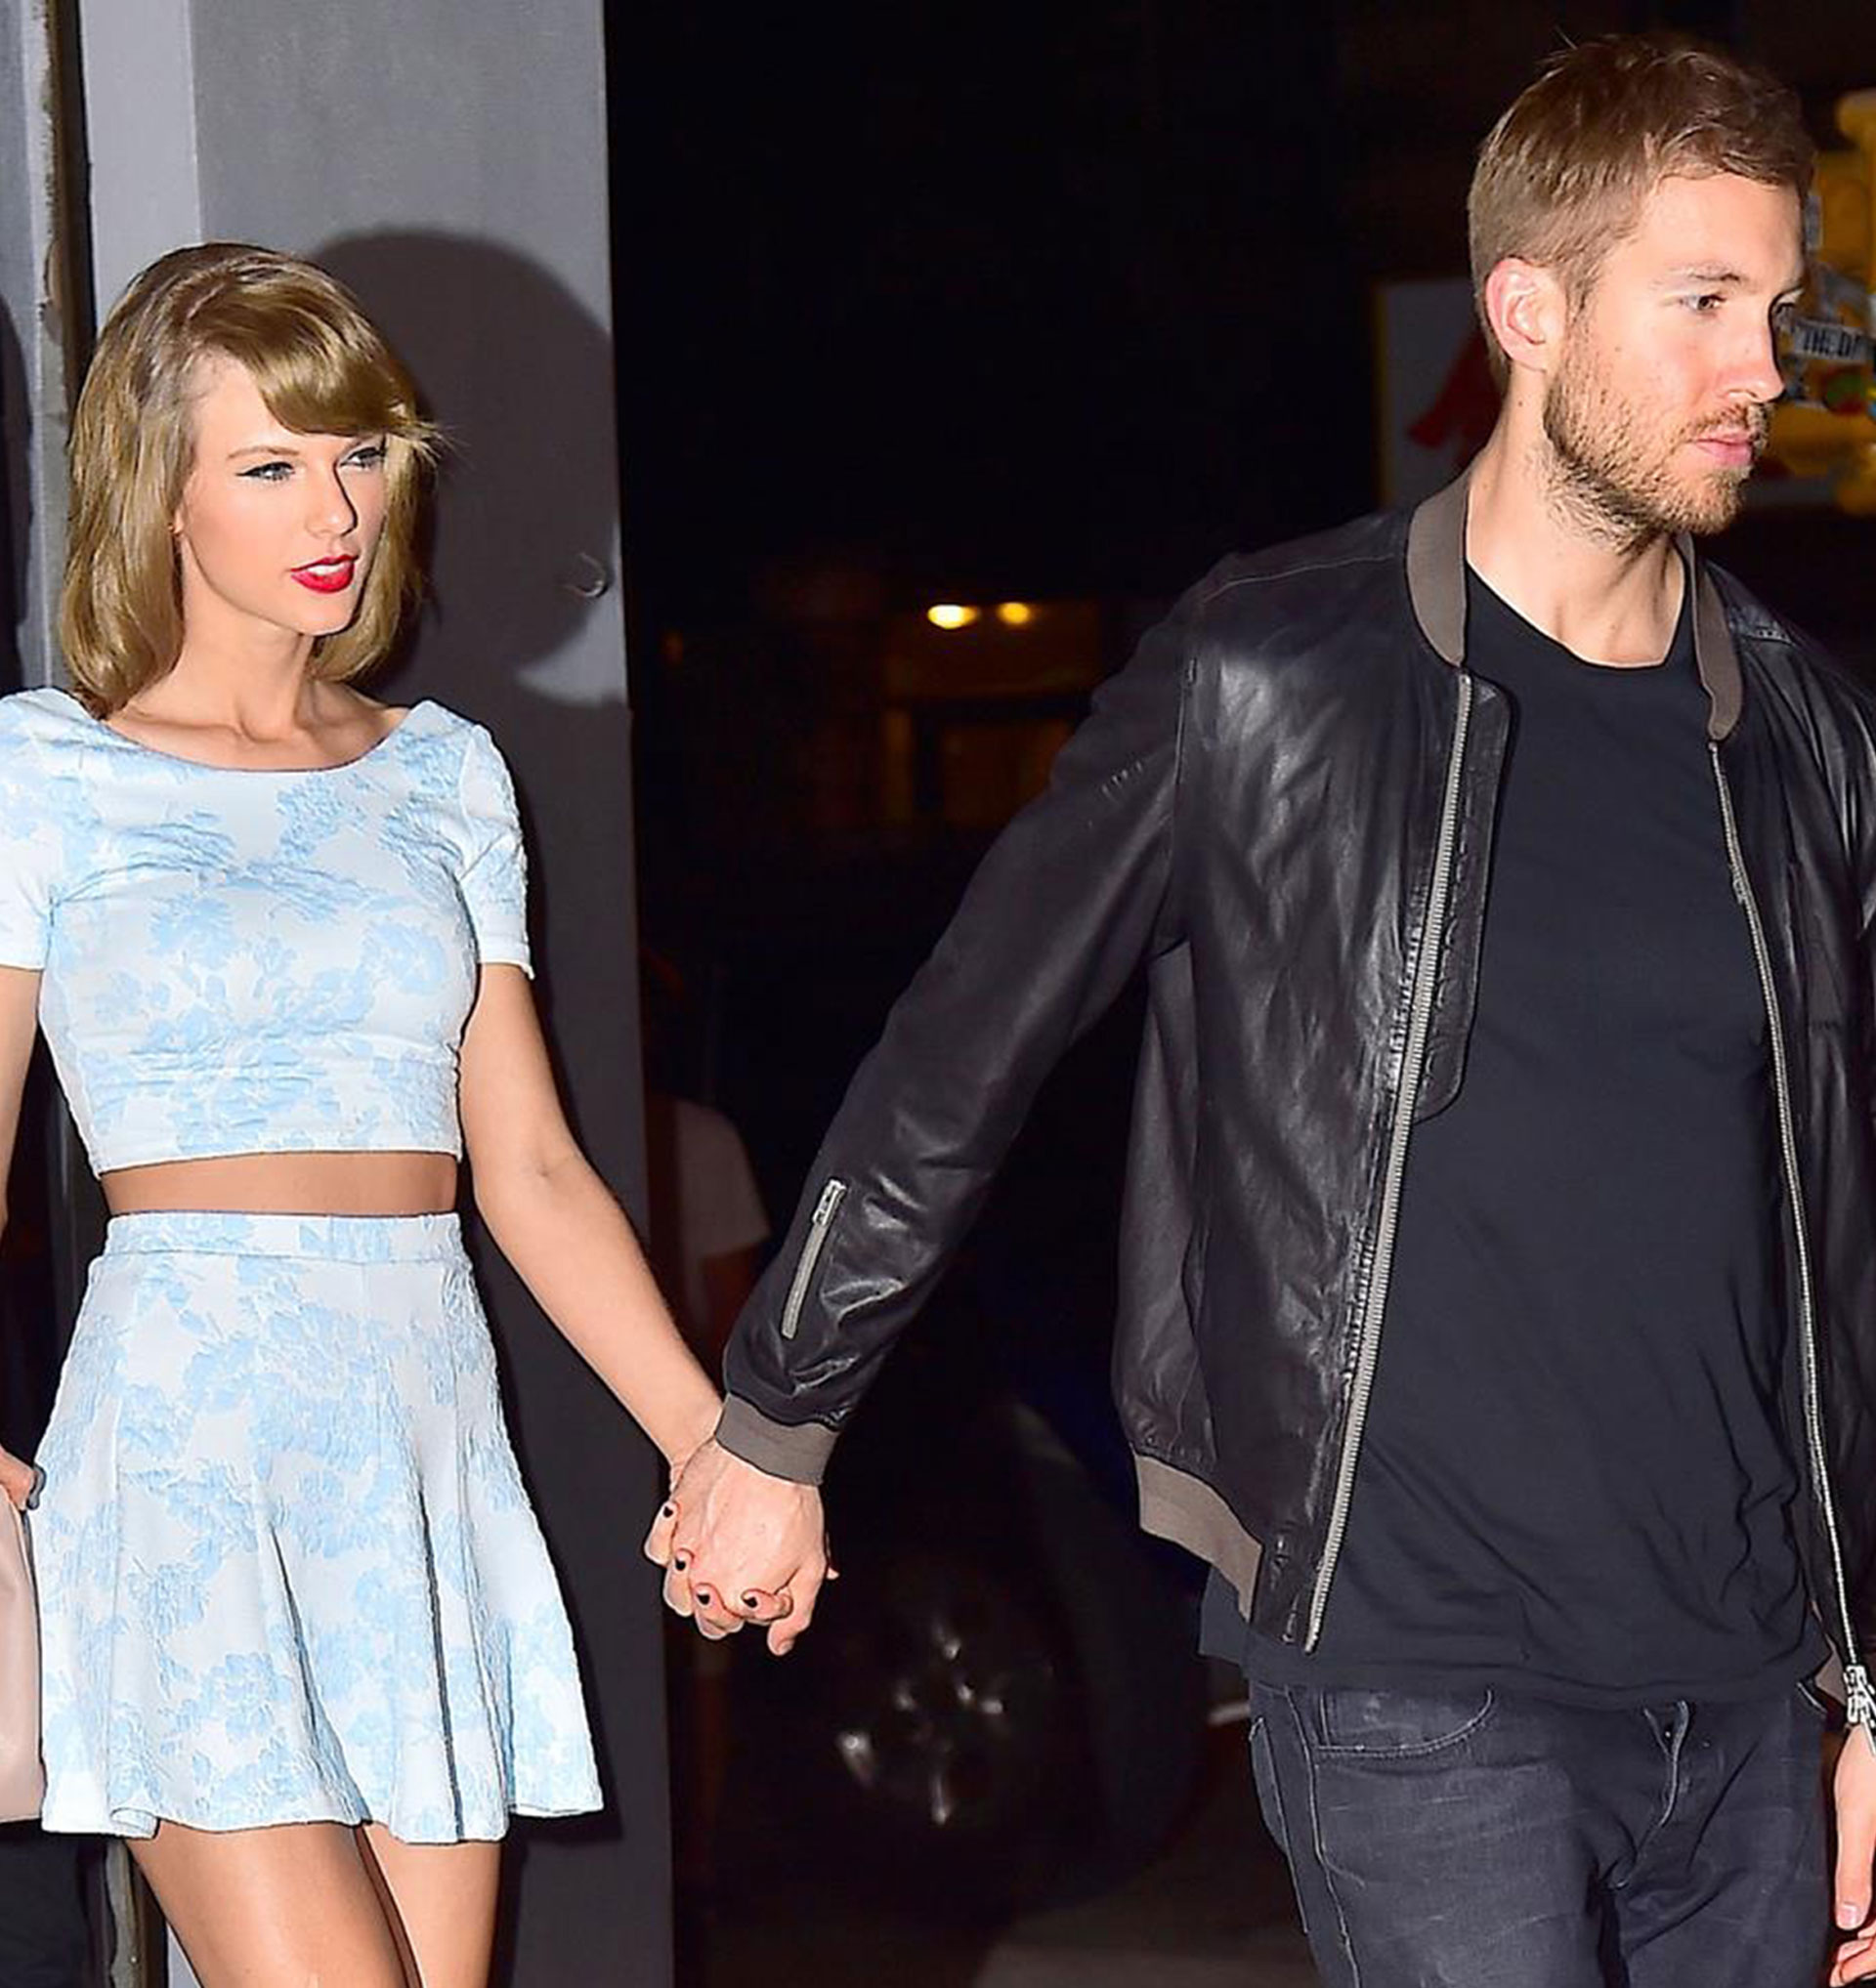 Calvin Harris' 'My Way' just 'amalgamation' of his life events